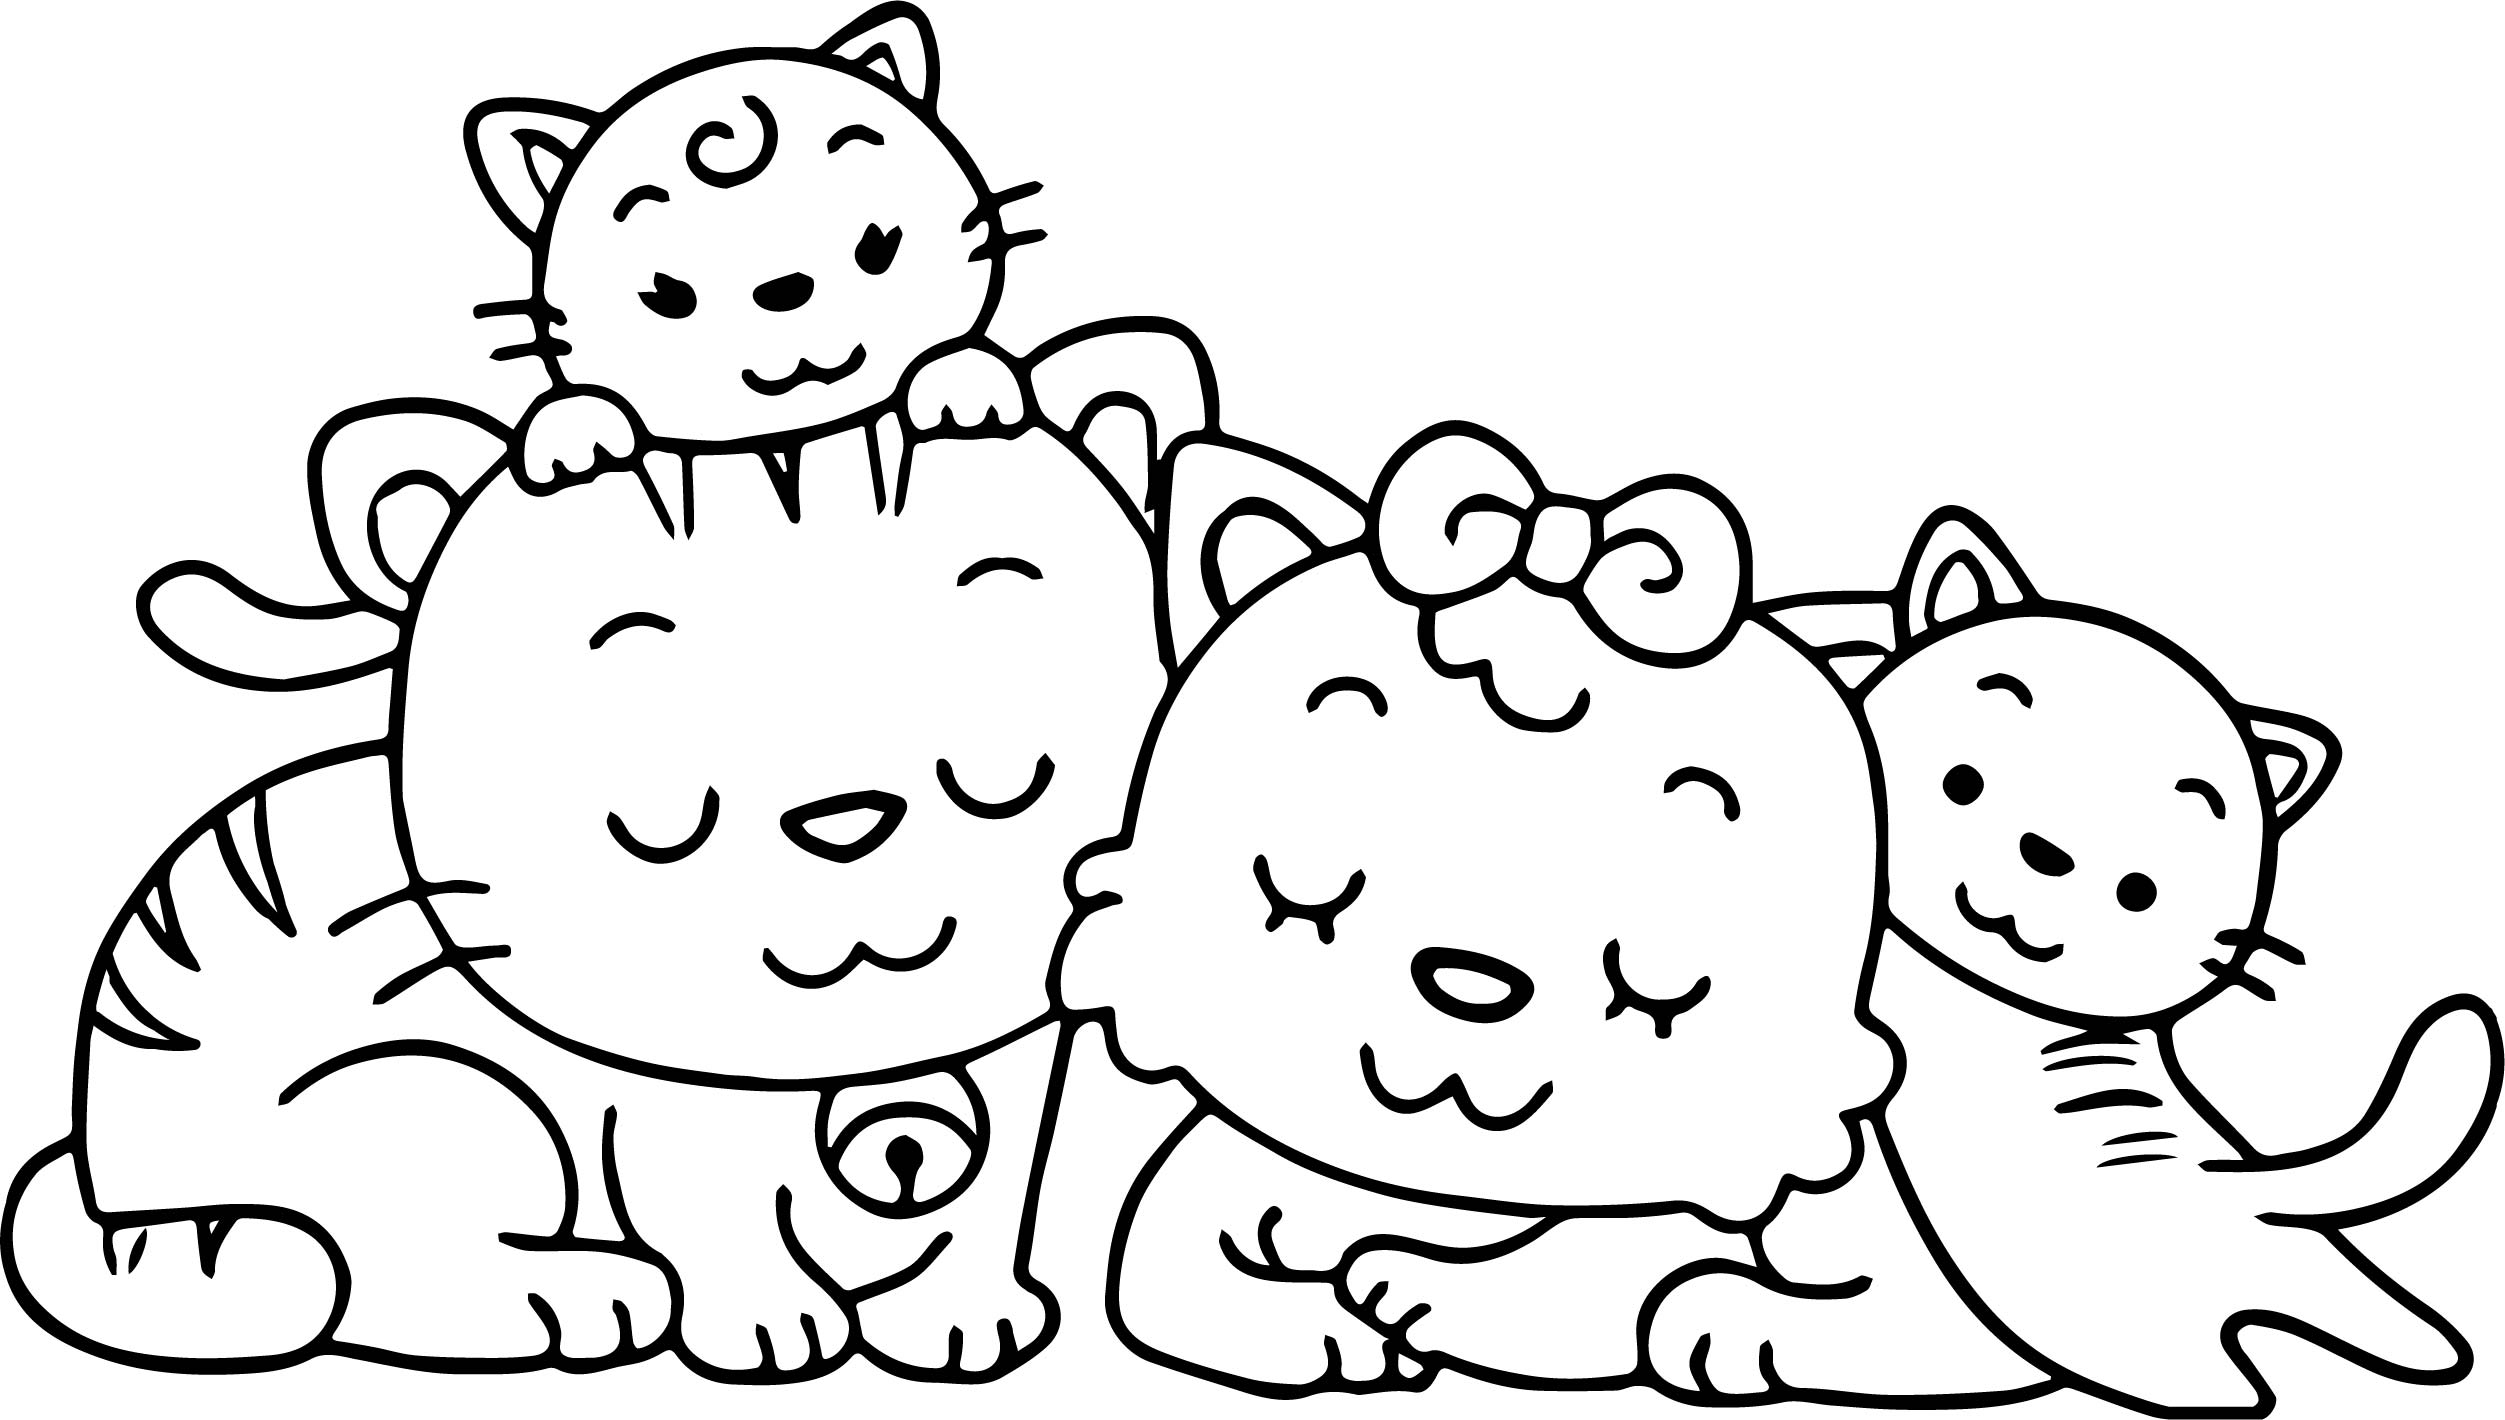 Animal Cat Family Coloring Page Wecoloringpage Family Coloring Page